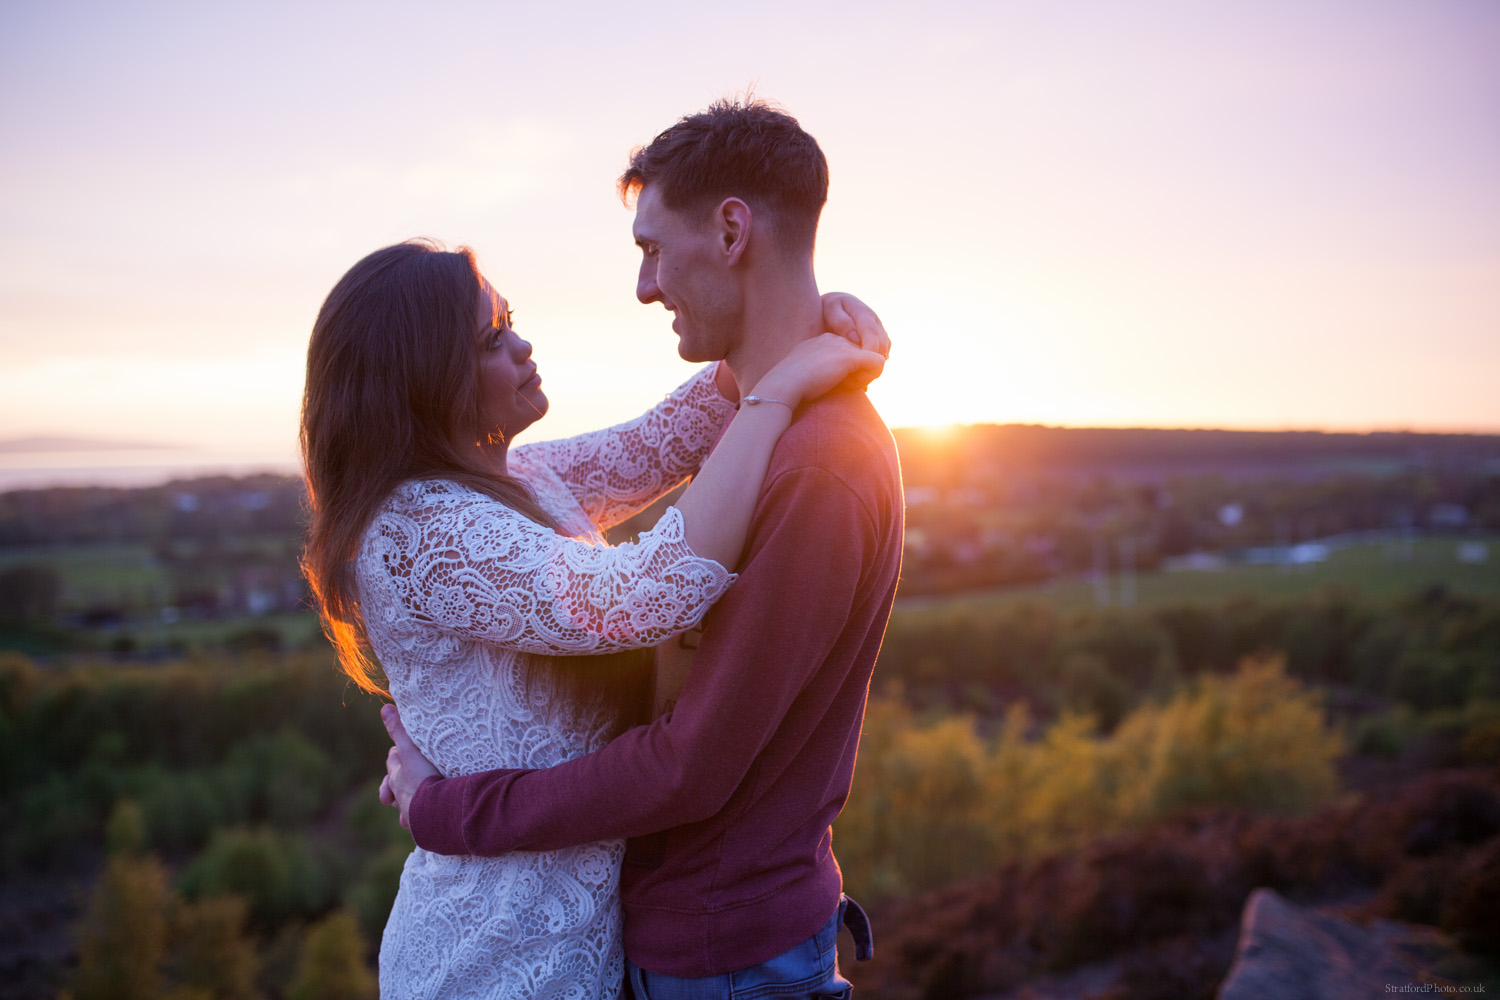 Hayley & David Beautiful Romantic Sunset Prewedding Engagement Shoot at Thurstaston on the Wirral 63.jpg